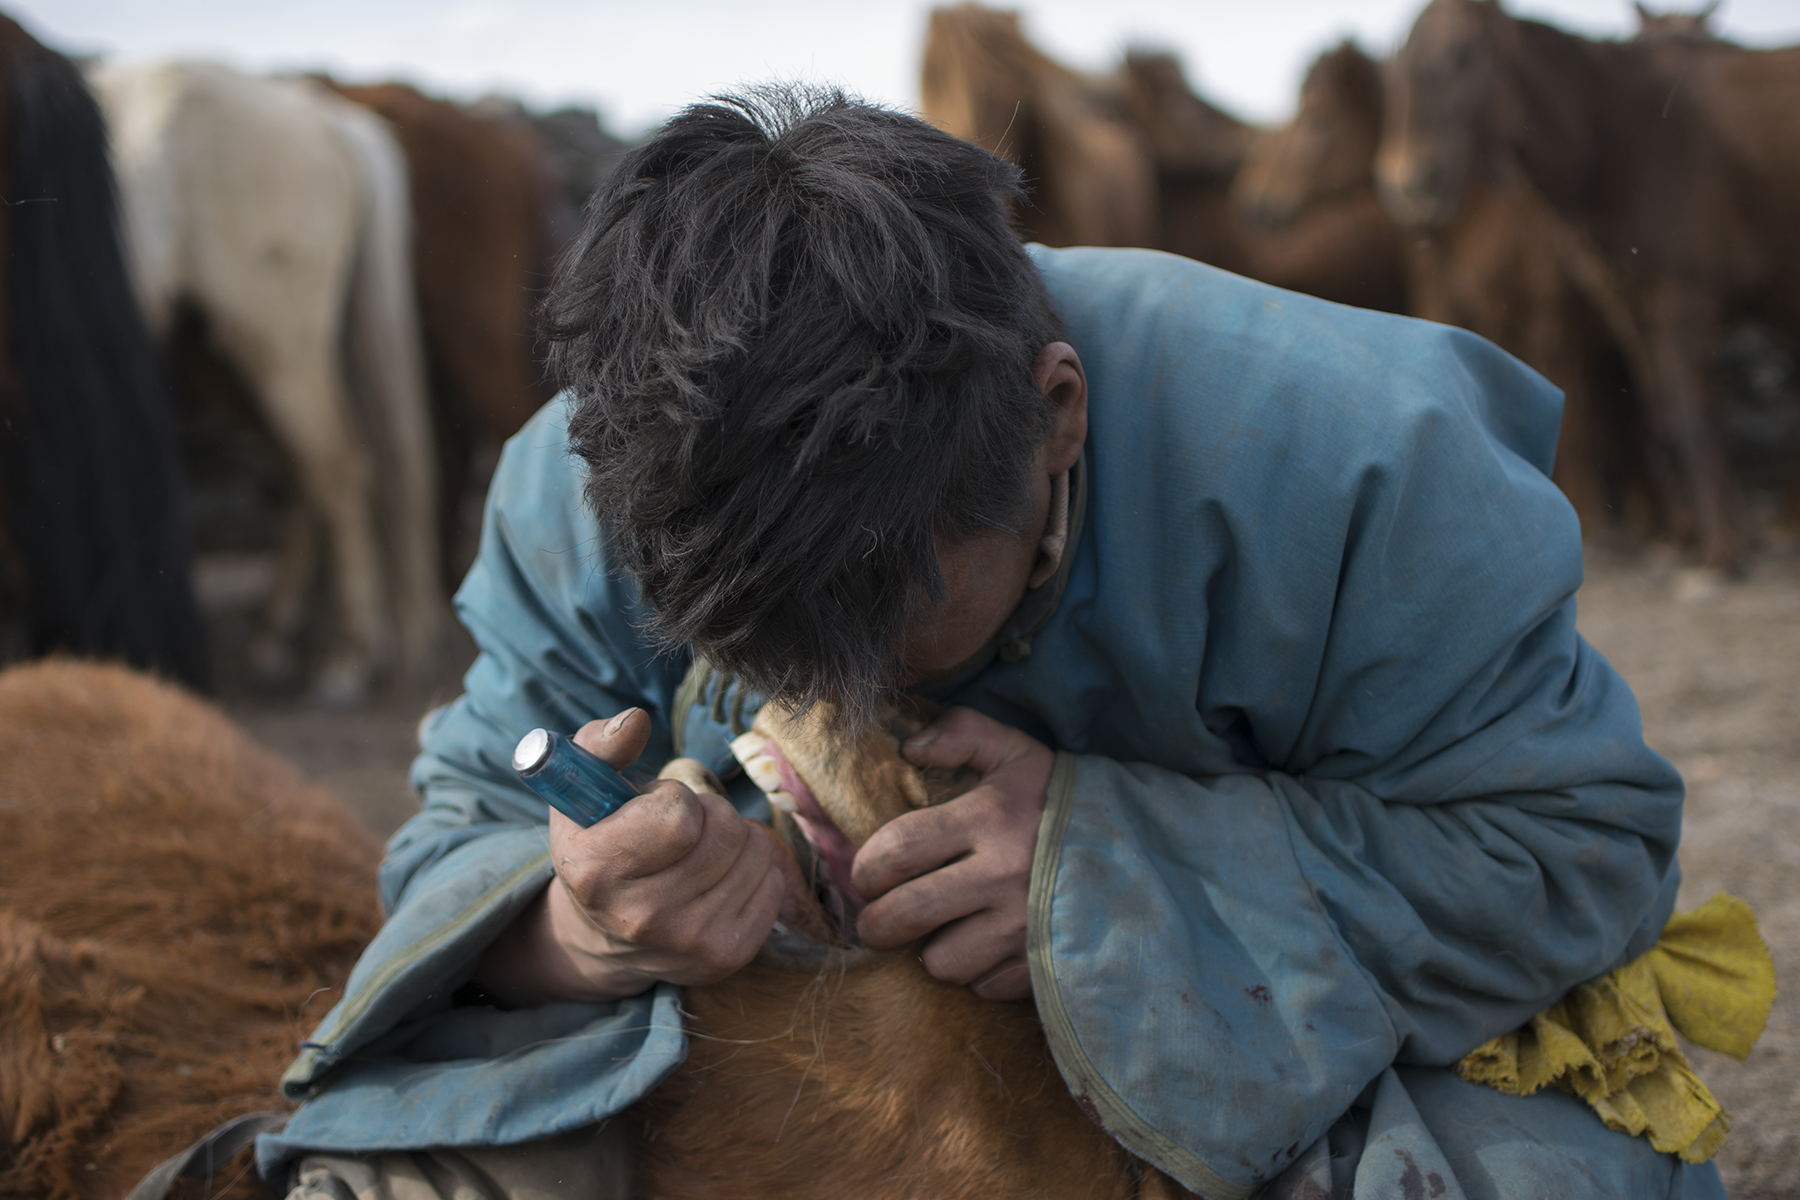 A Haircut for Mongolia's 'Half-Wild' Horses